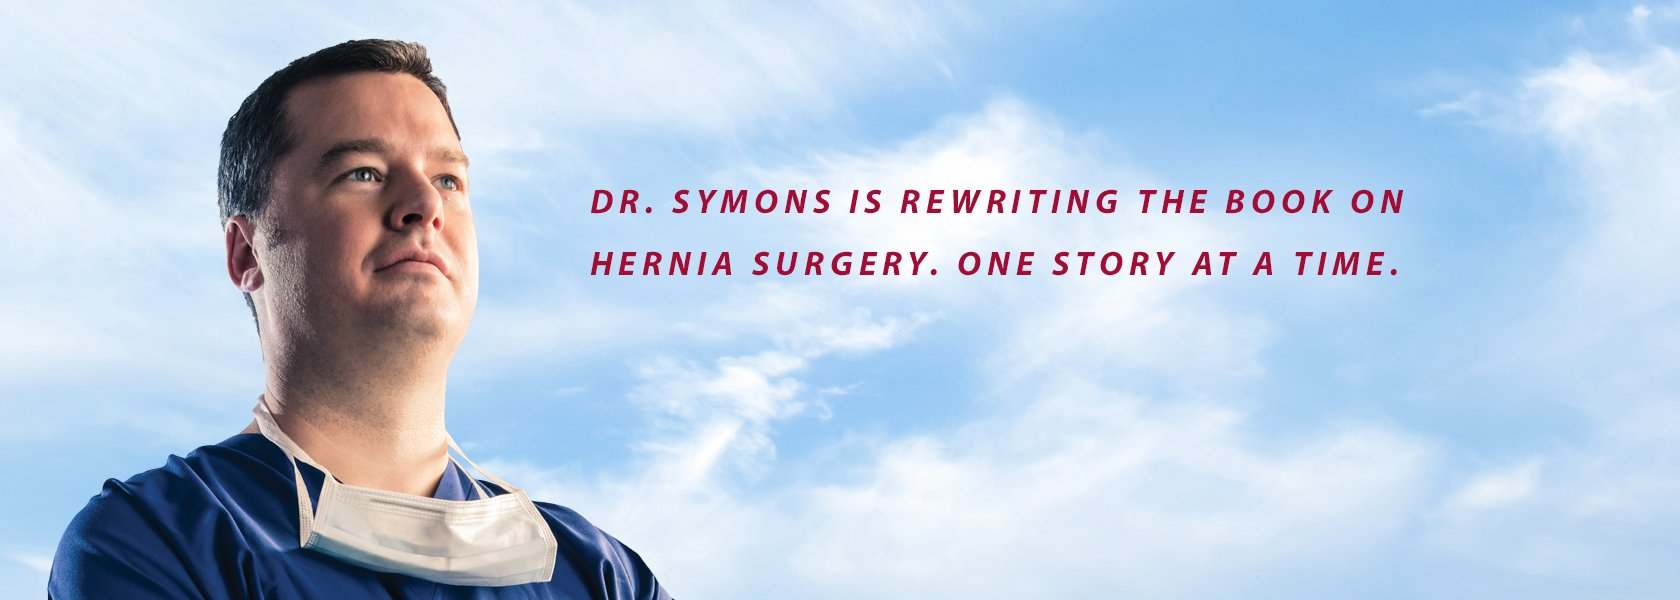 Dr. Symons is rewriting the book on hernia surgery. One story at a time.